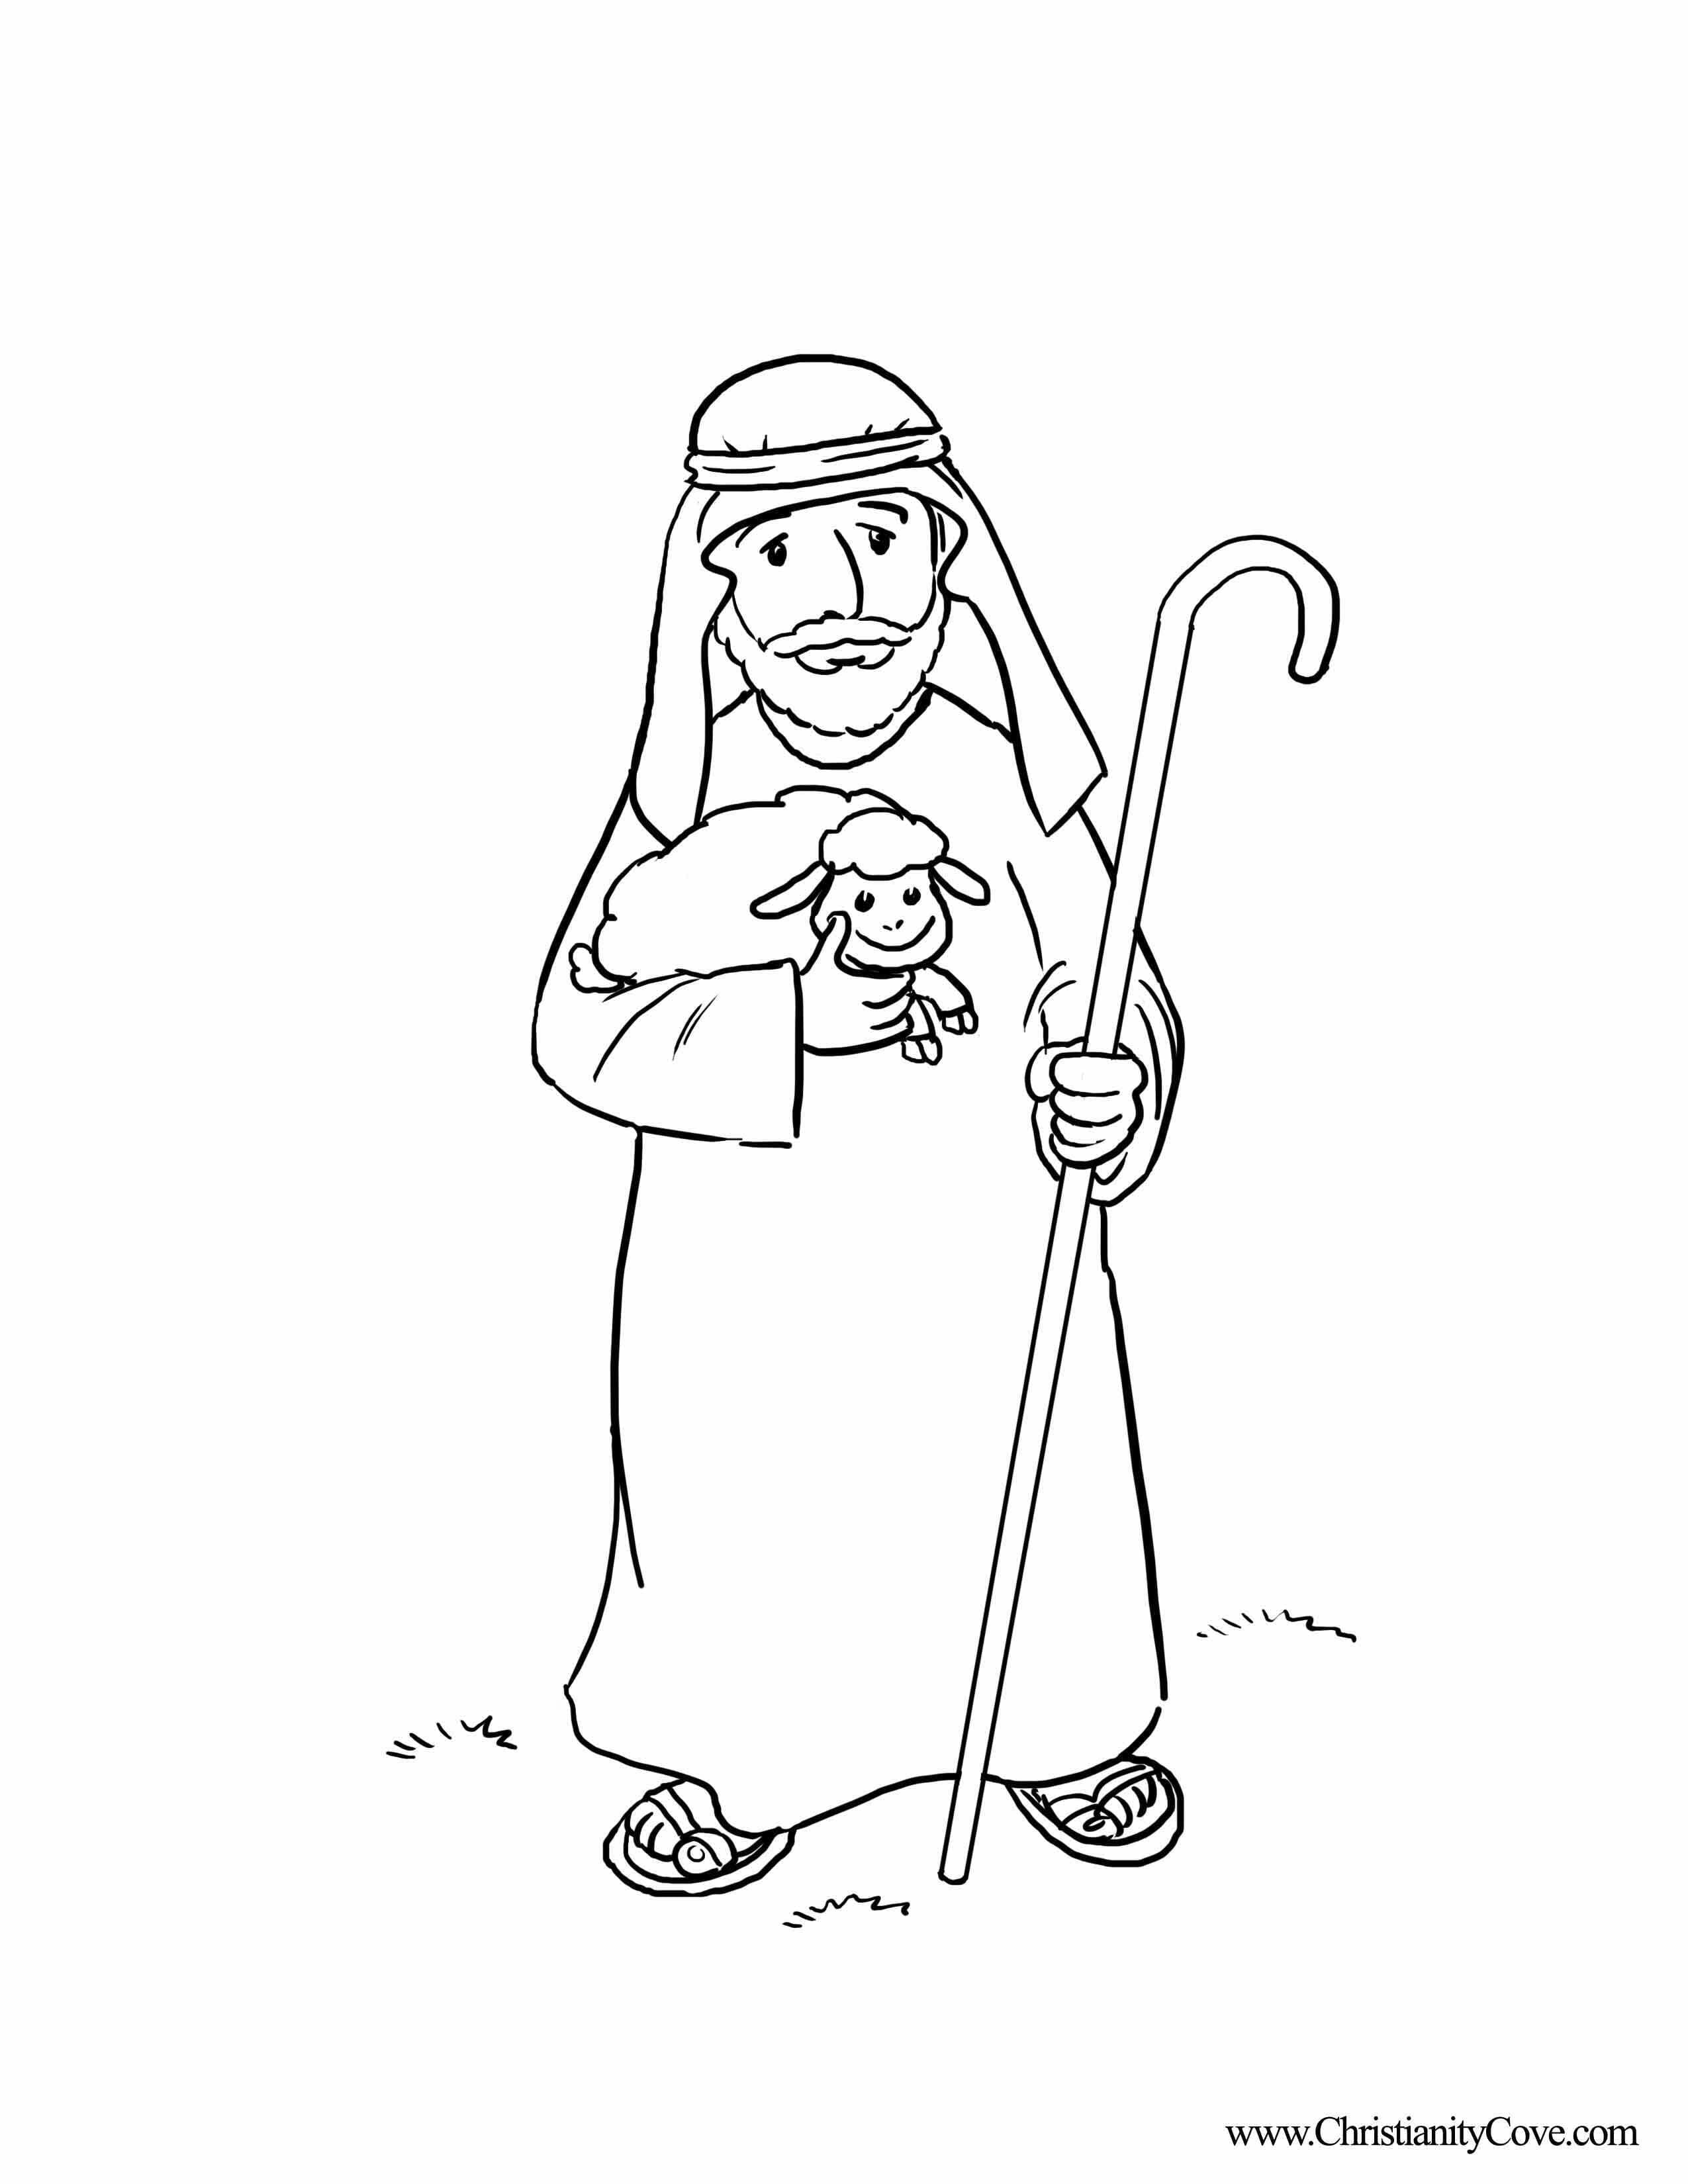 Printable Bible Coloring Pages For Toddlers?Trackid=Sp-006  Bible Printables Coloring Pages For Sunday School